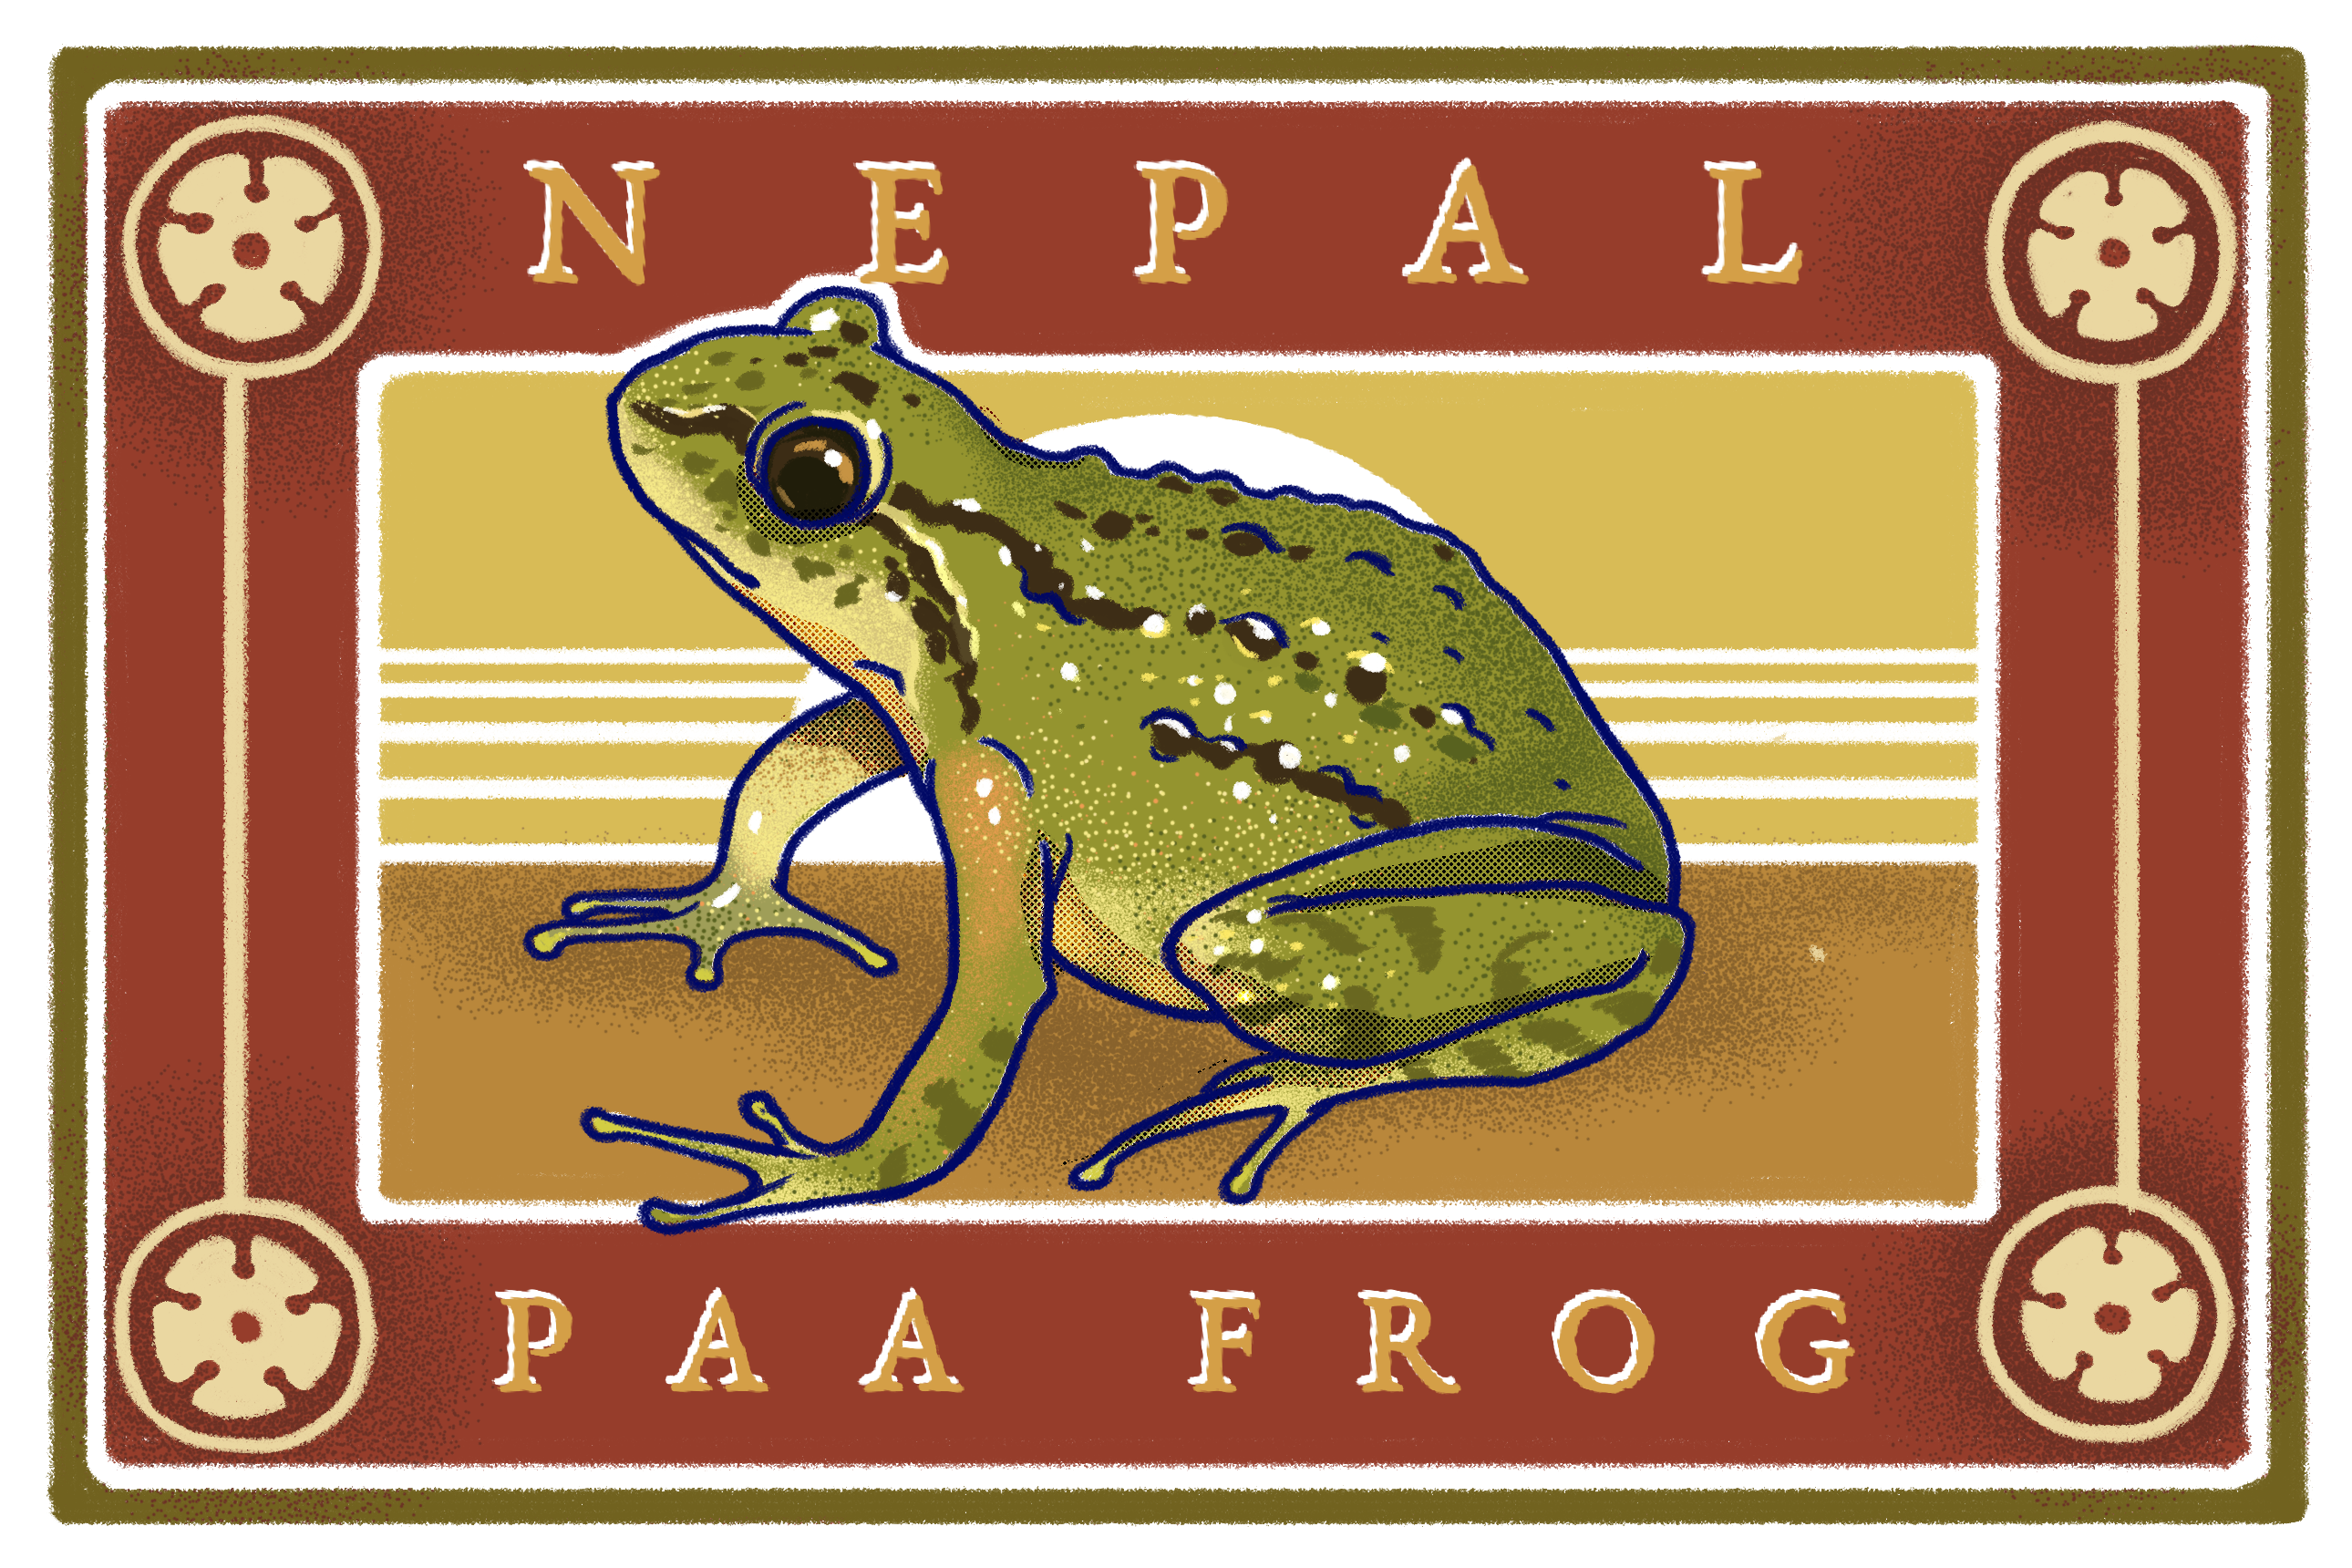 Illustration of a Nepal paa frog by Kabini Amin